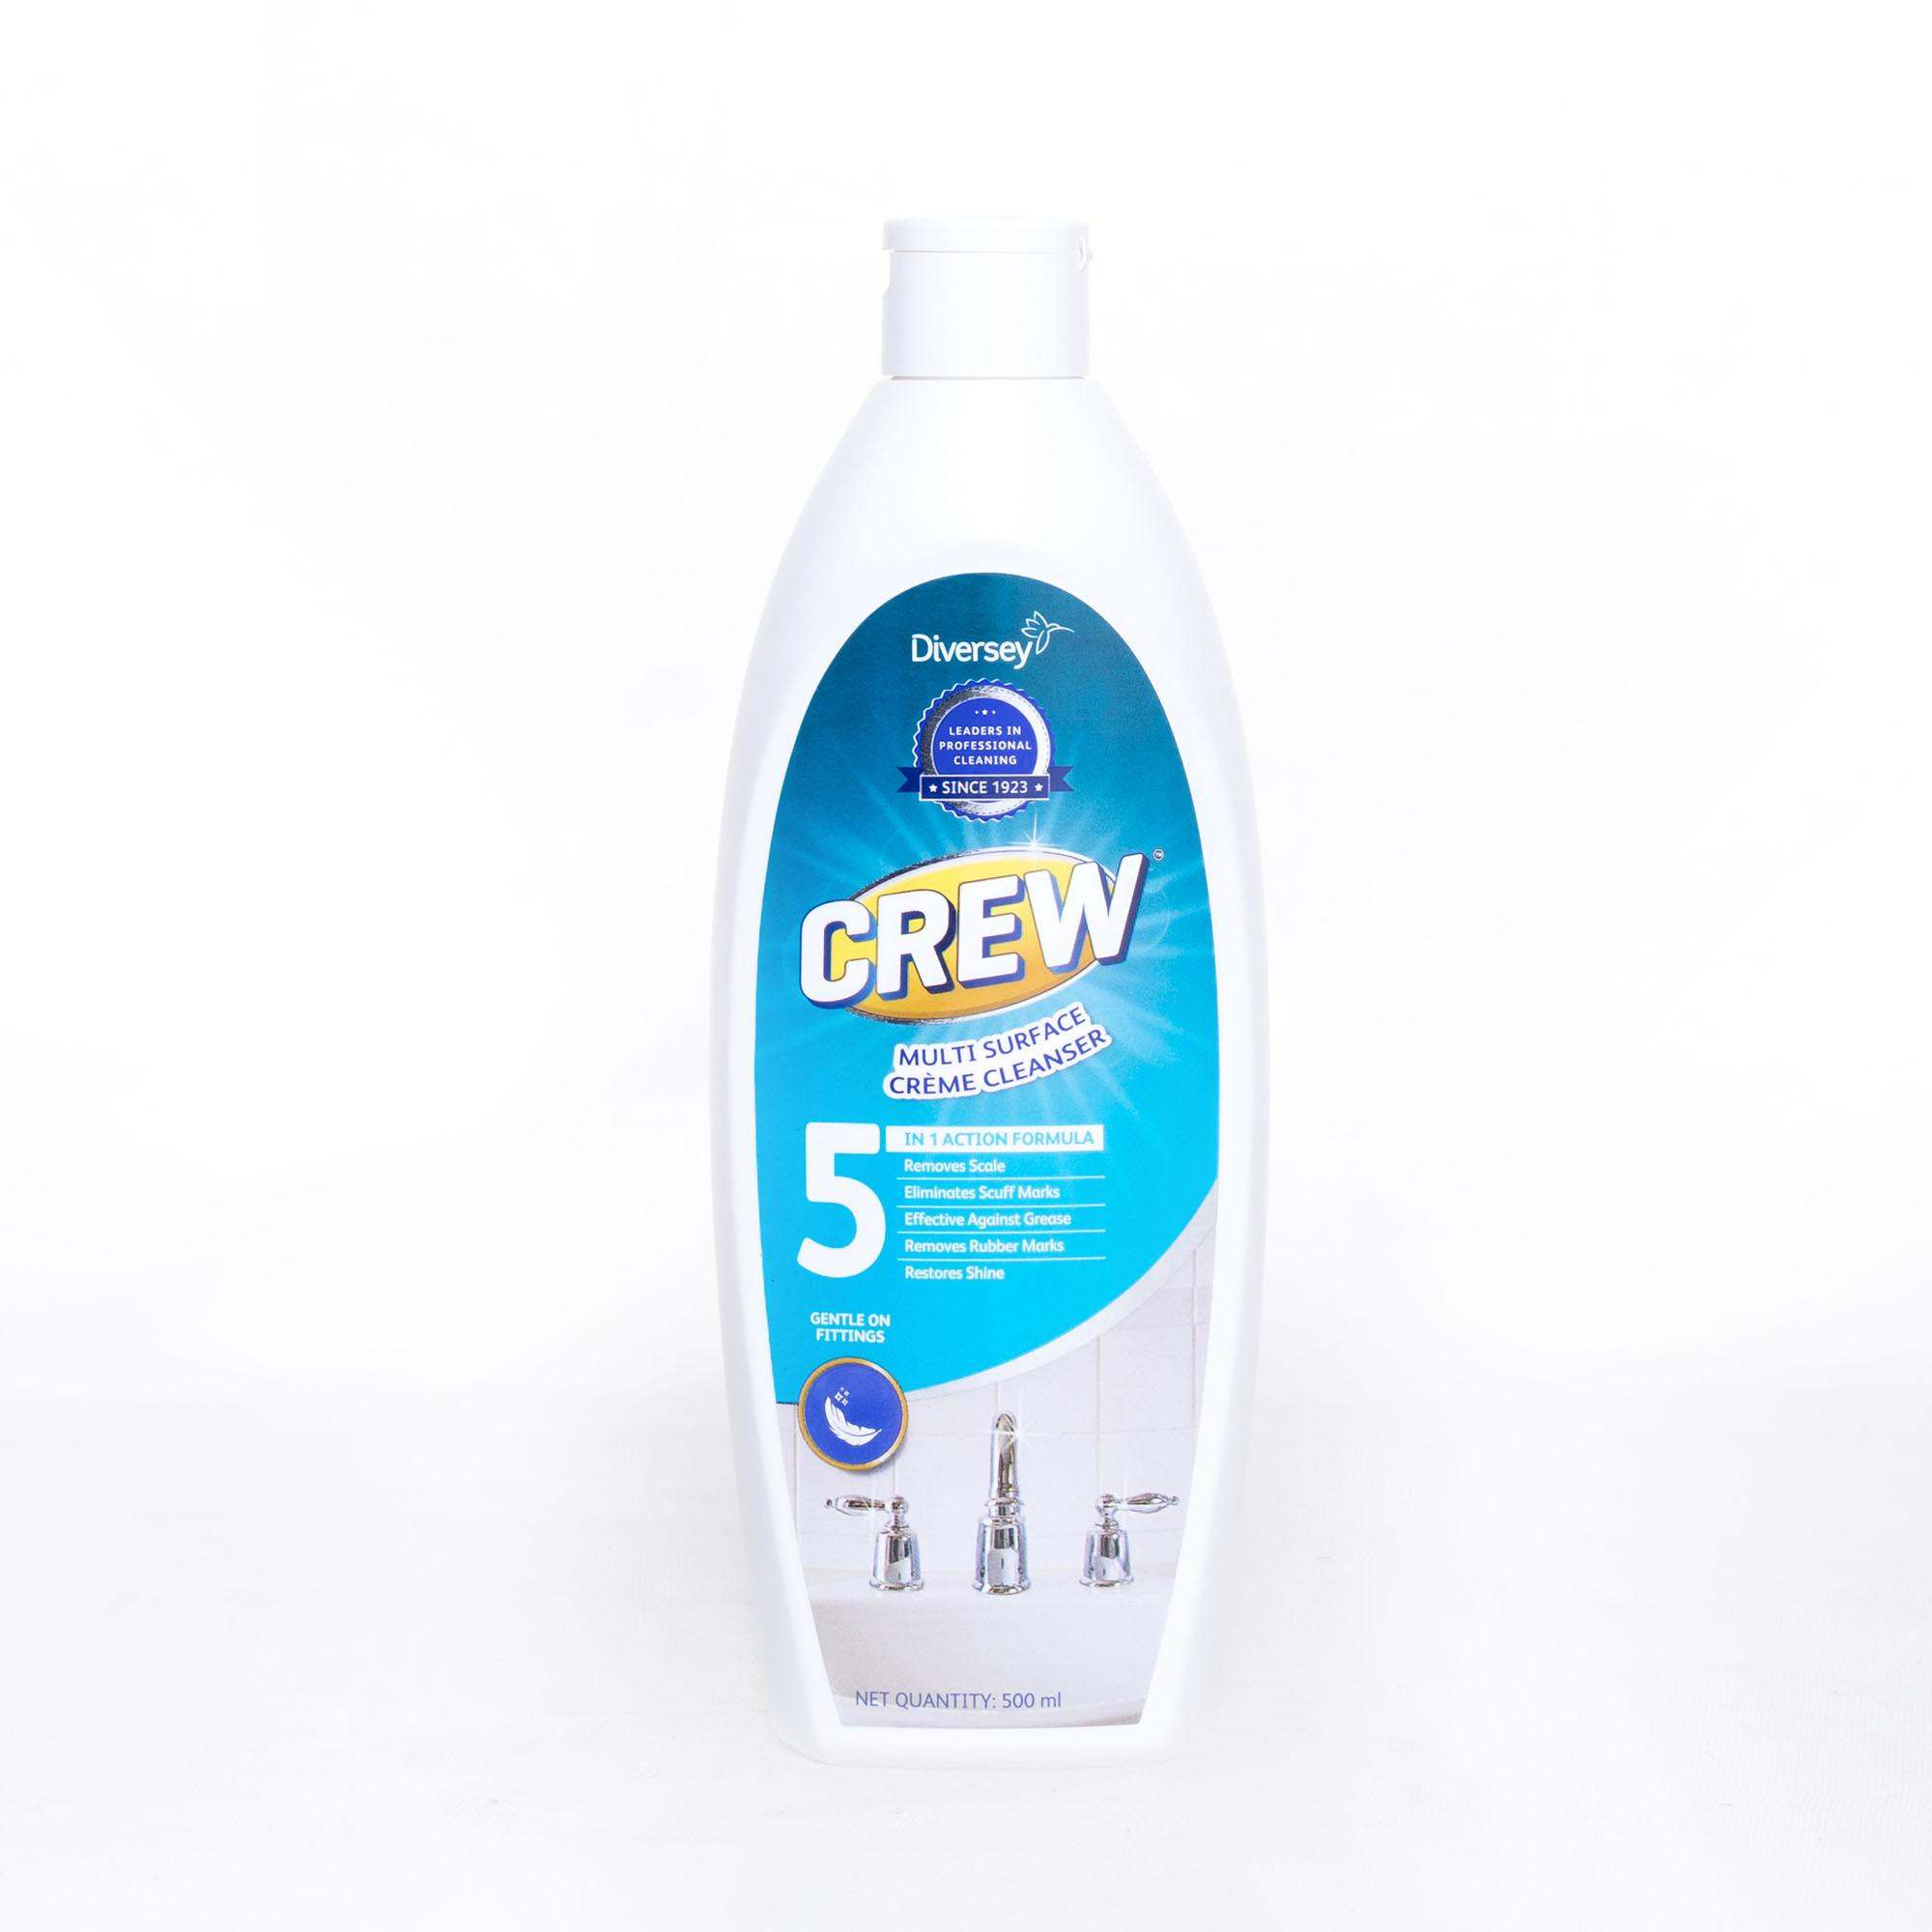 Crew%20Multi%20surface%20Creme%20Cleanser%20%28Front%292000x2000.jpg